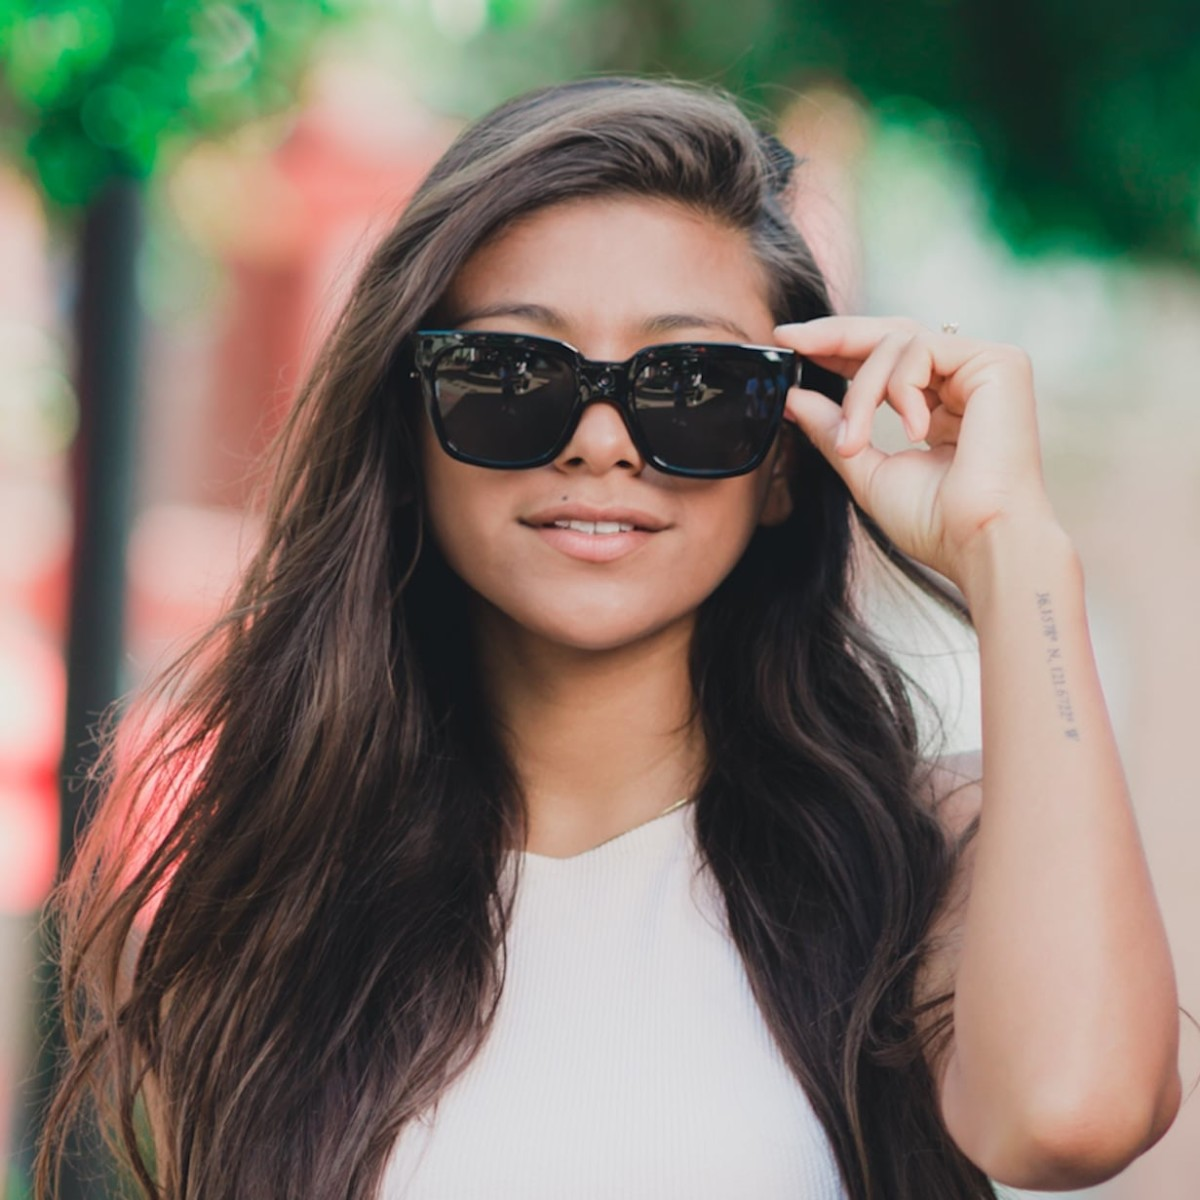 Trendloader Alpha Live Video-Streaming Sunglasses let you share your experiences in real time